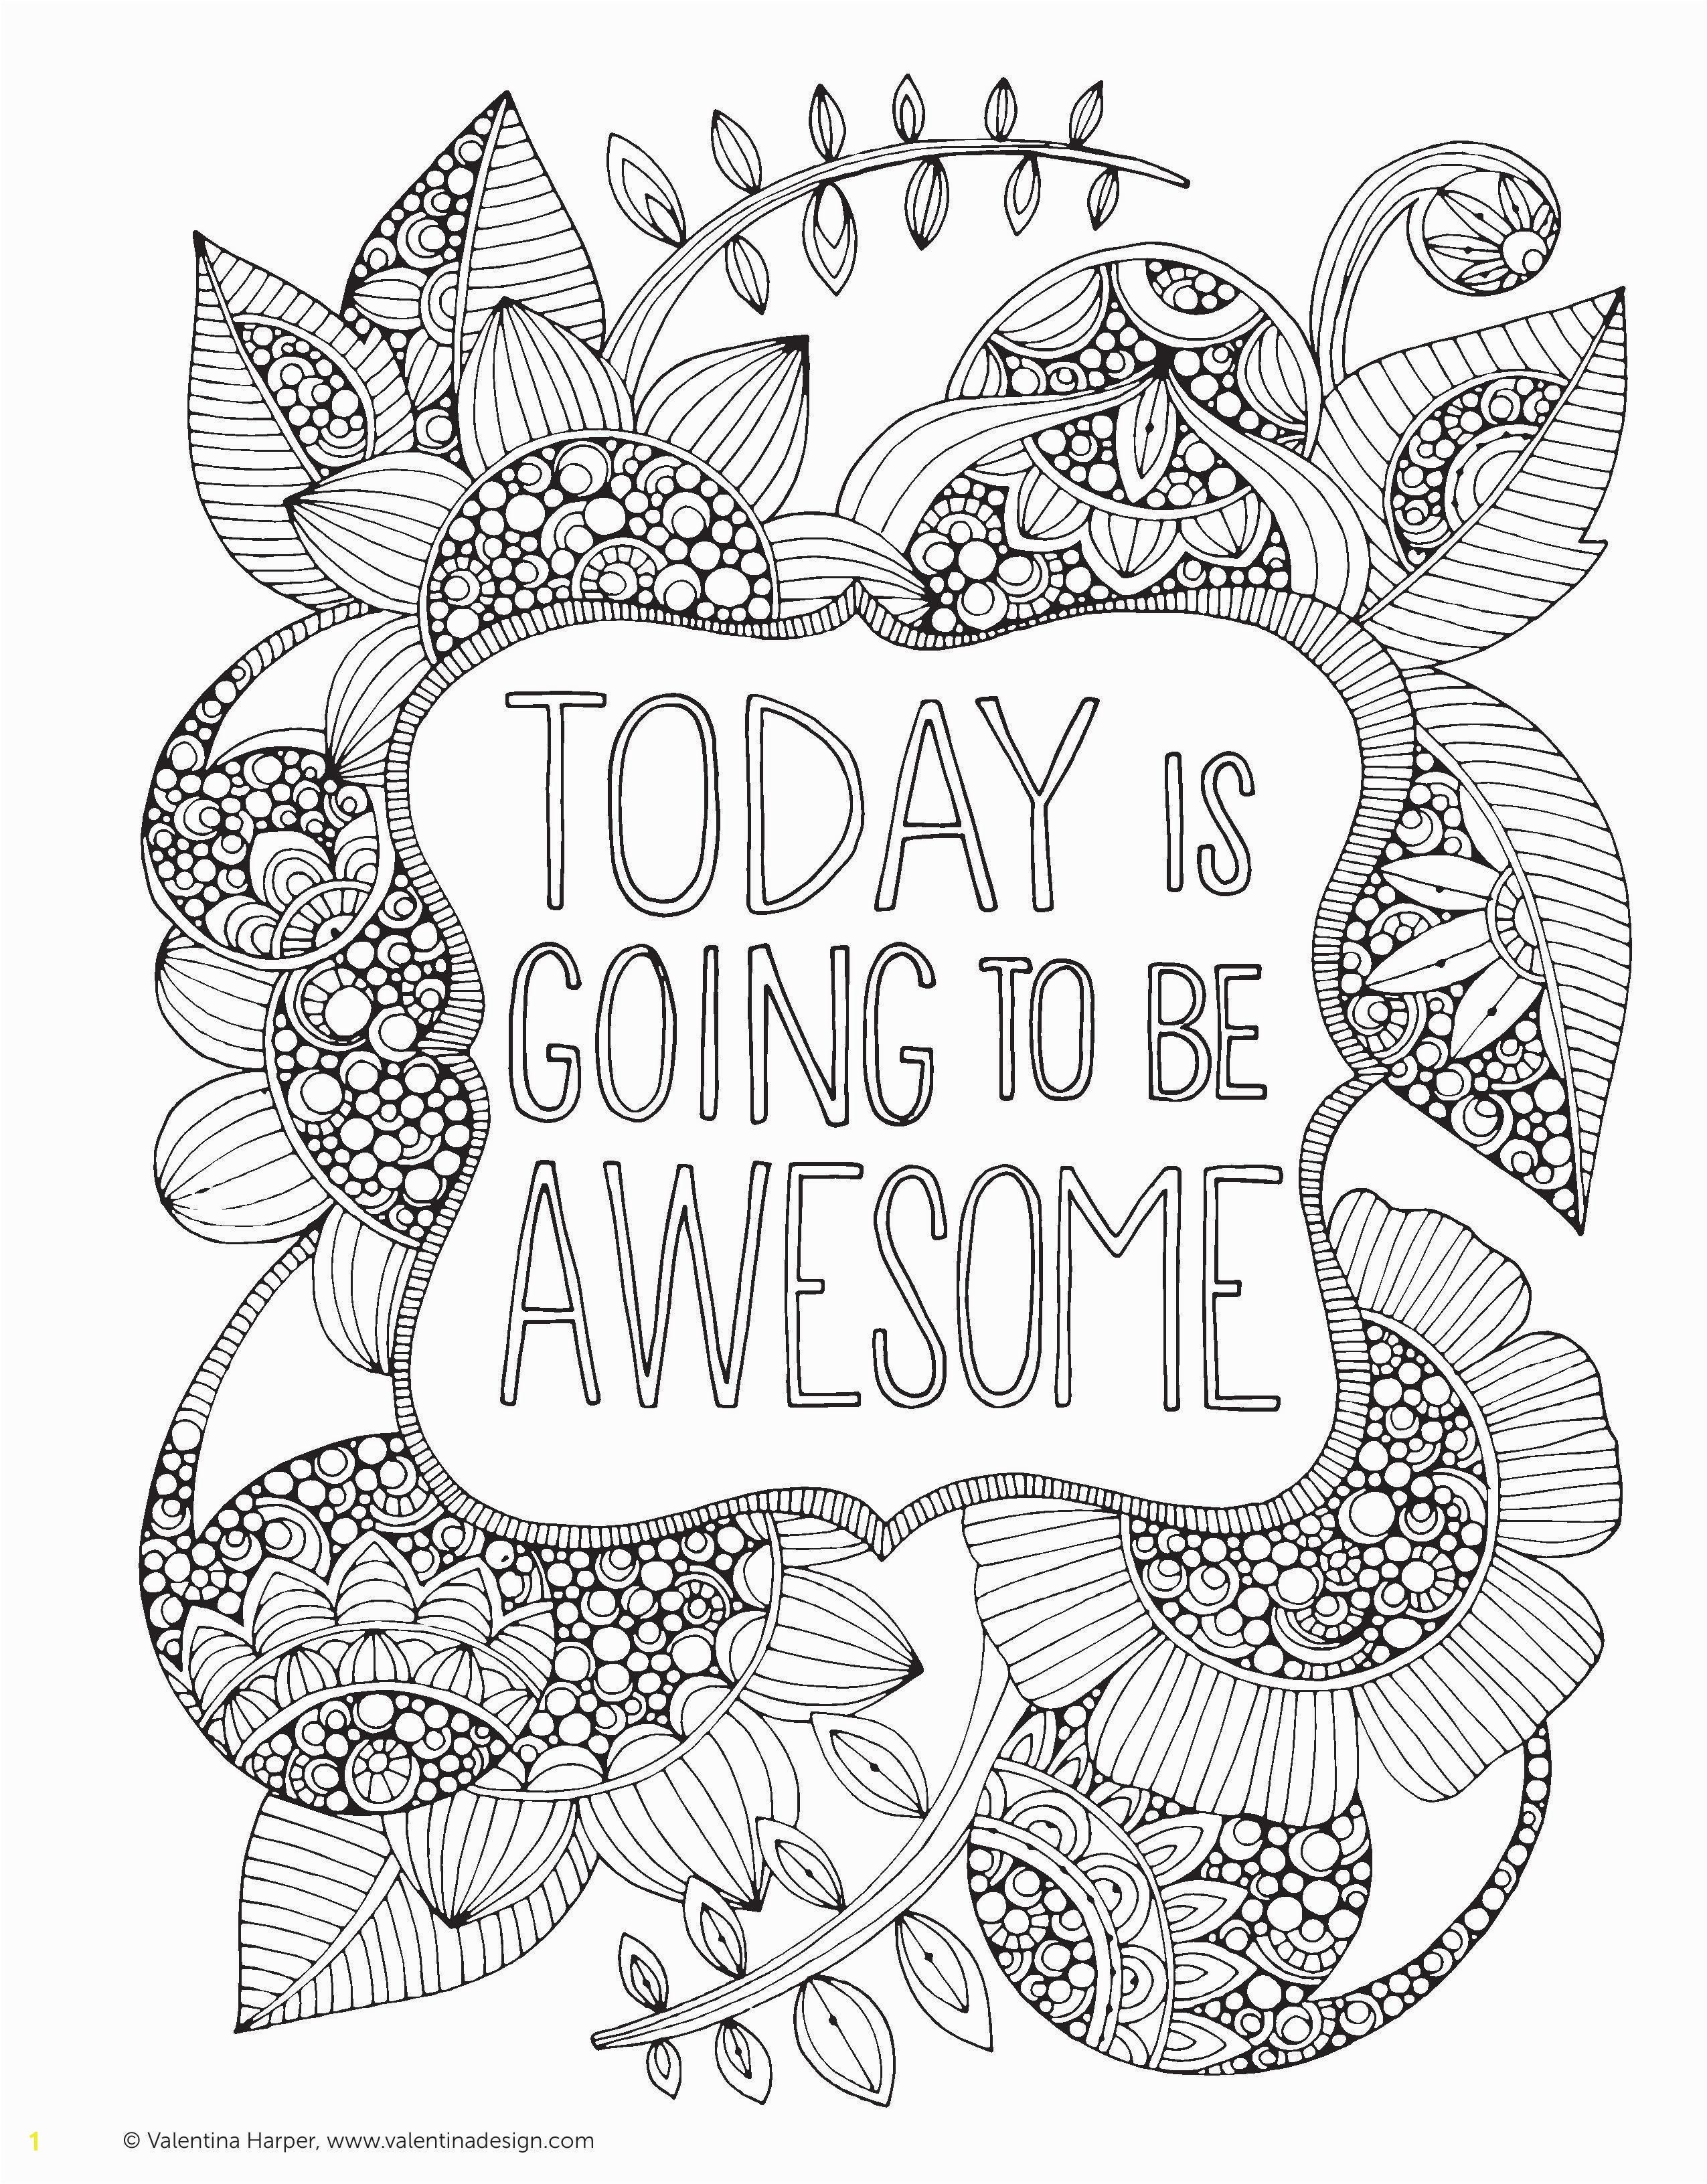 Today is going to be awesome Creative Coloring Inspirations free Printable colouring page also one other free owl colouring page